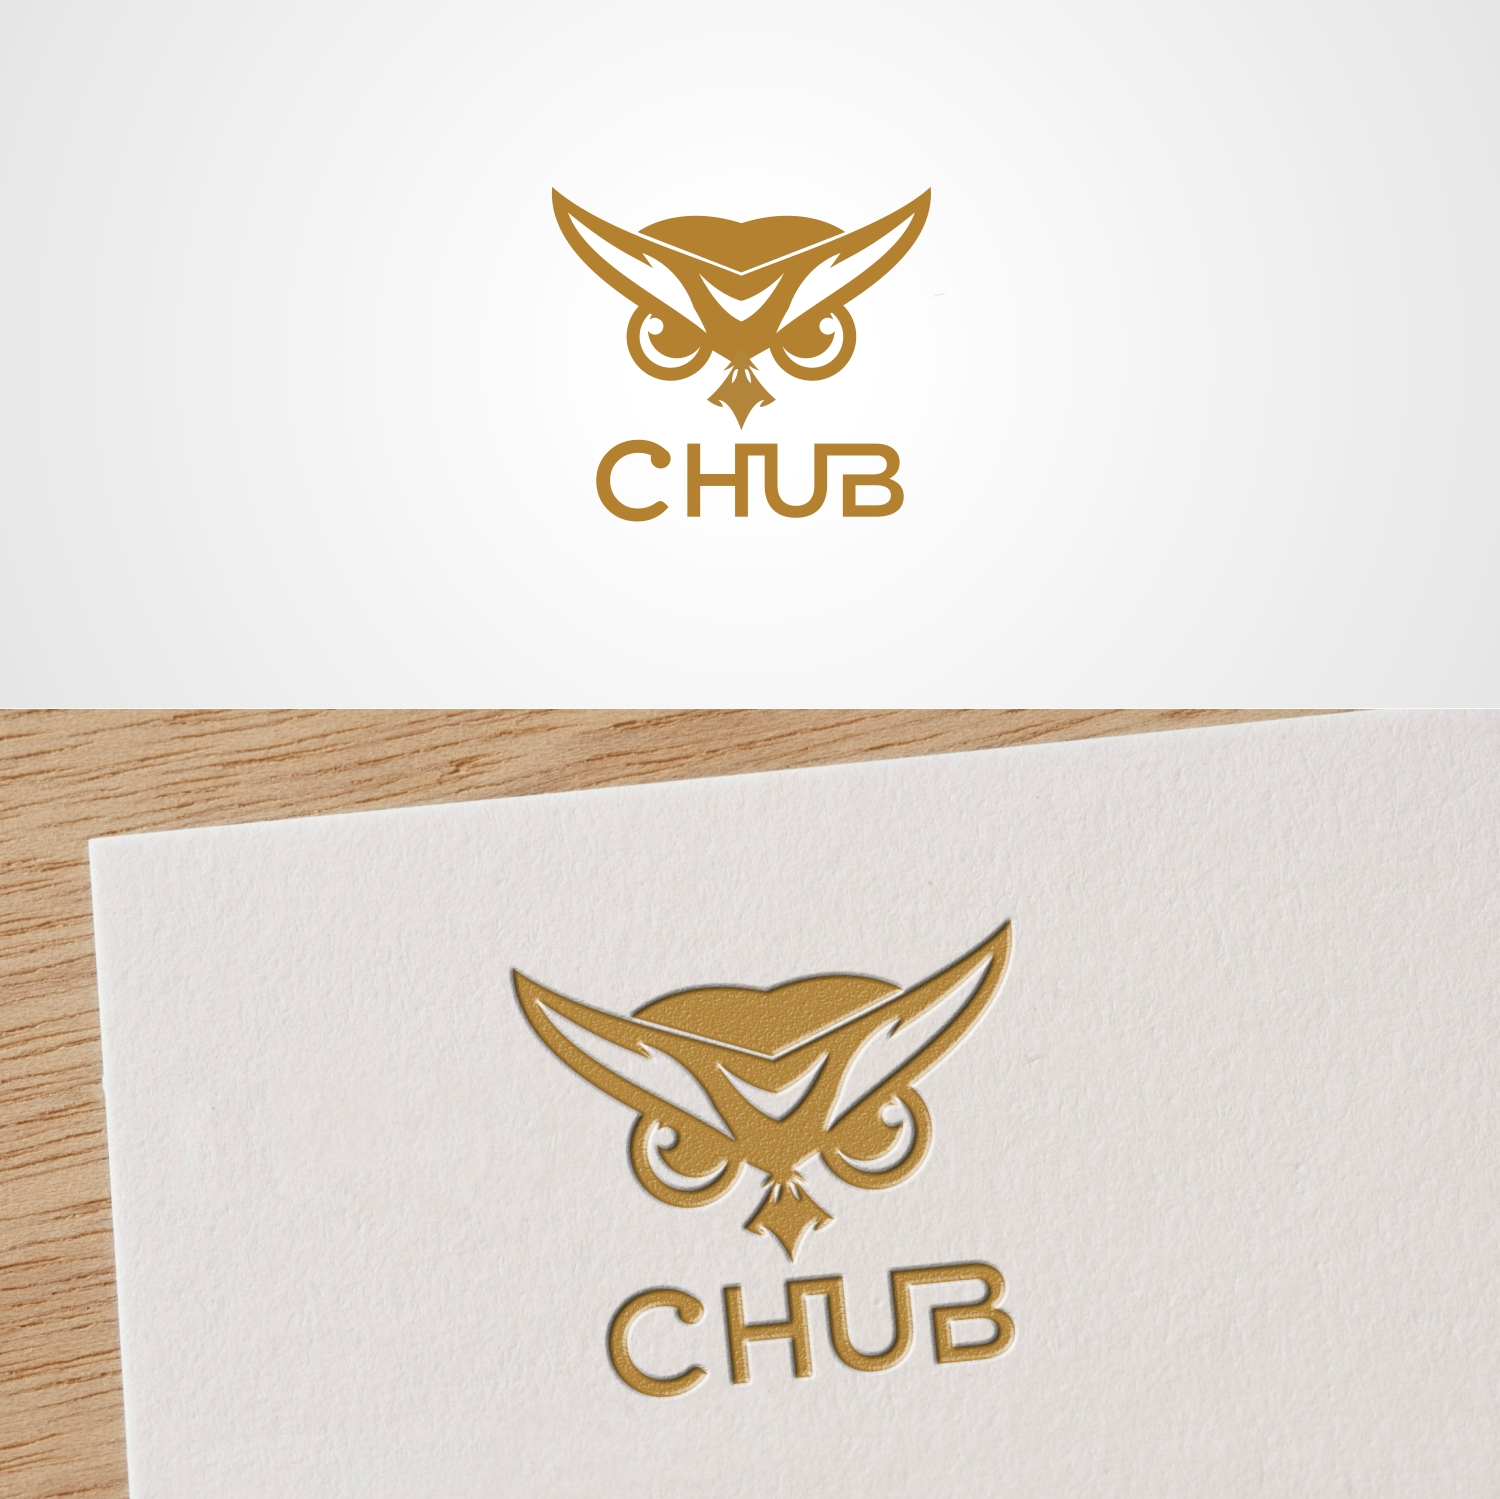 Elegant, Playful Logo Design for C HUB by Joenet Jayawarna | Design